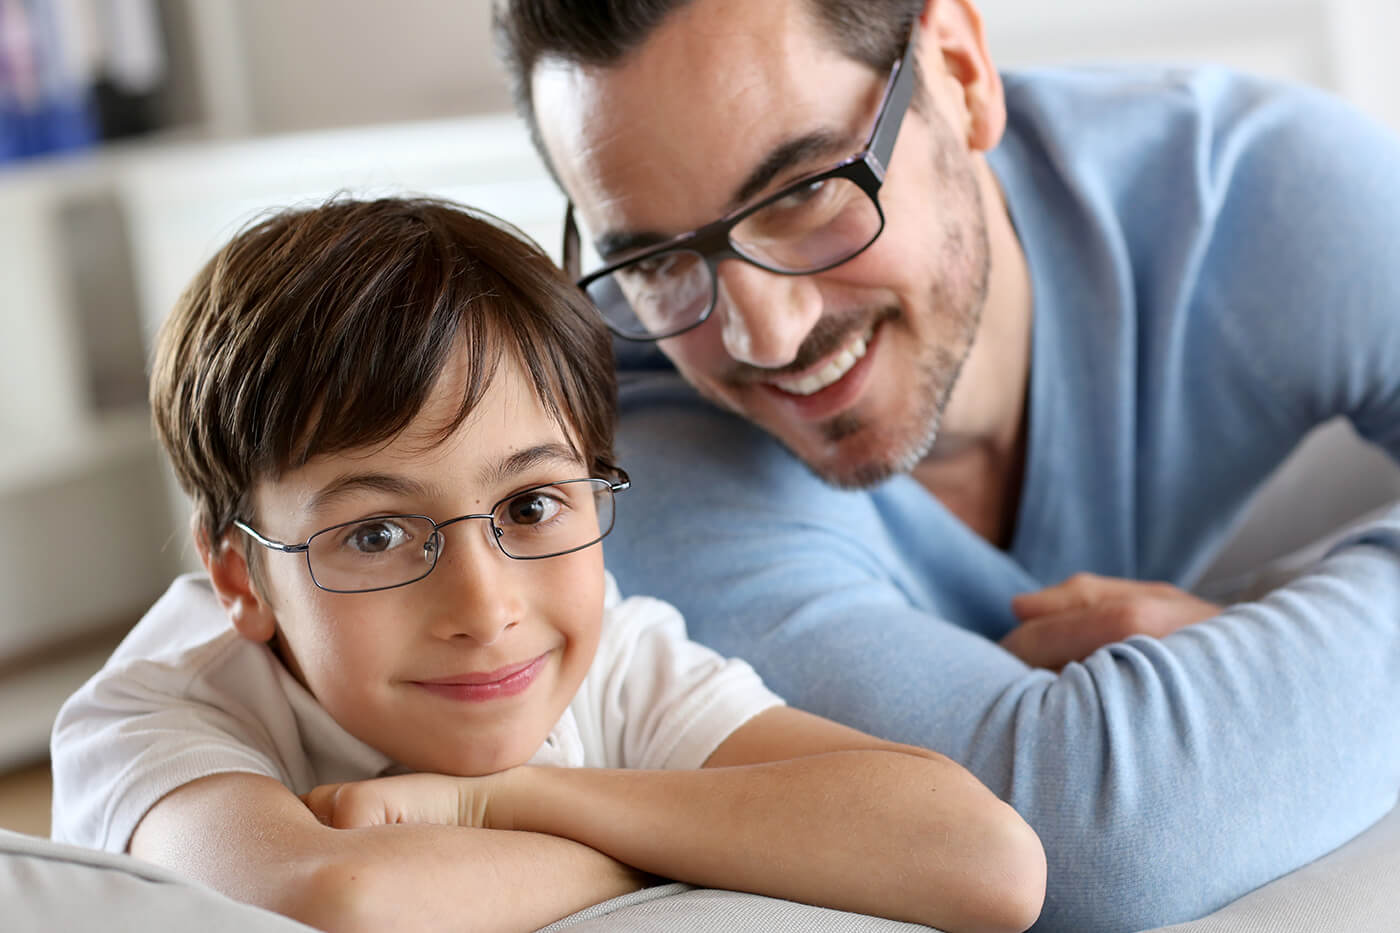 Glasses for kids and dads